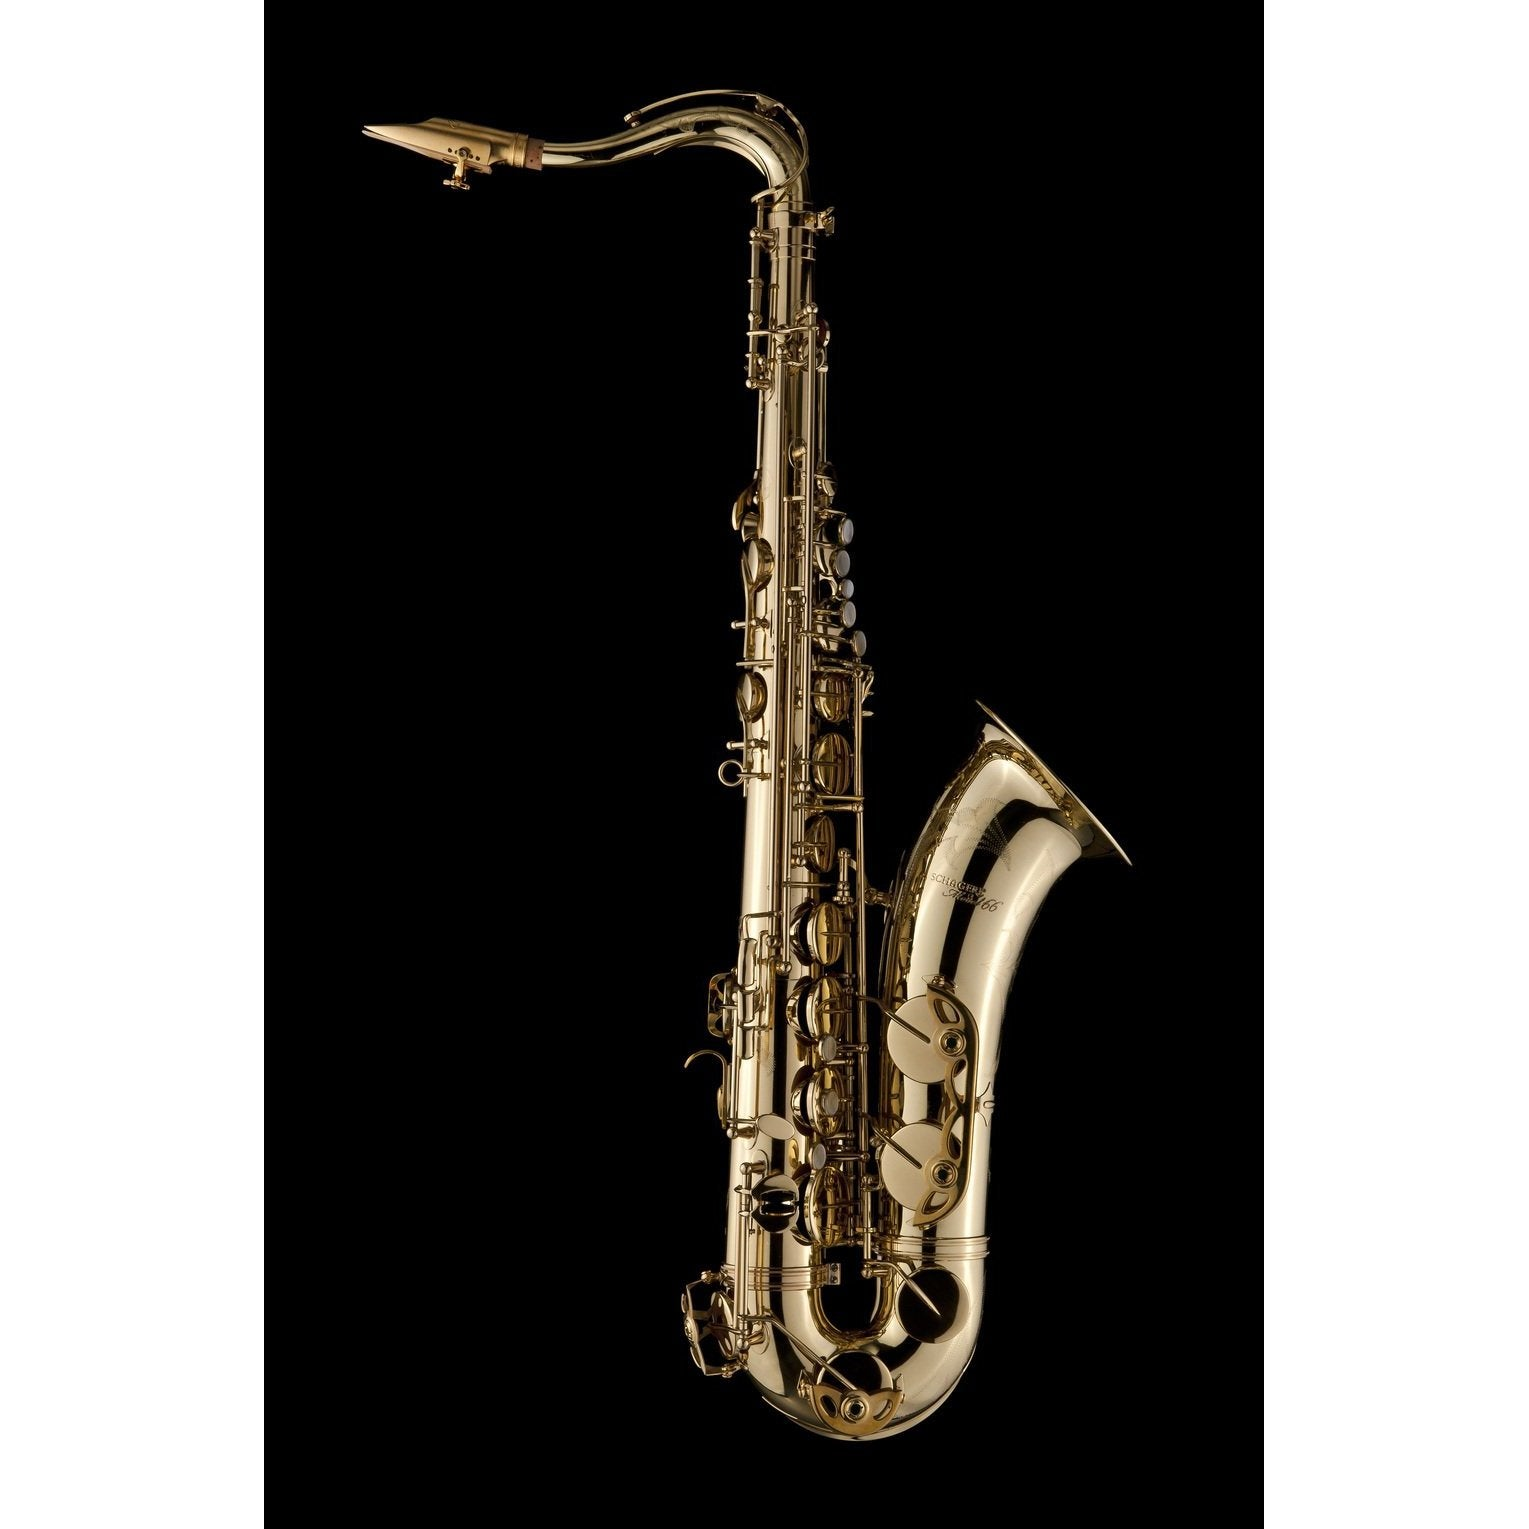 Schagerl - Model 66 Tenor Saxophones-Saxophone-Schagerl-Lacquered-With-Music Elements